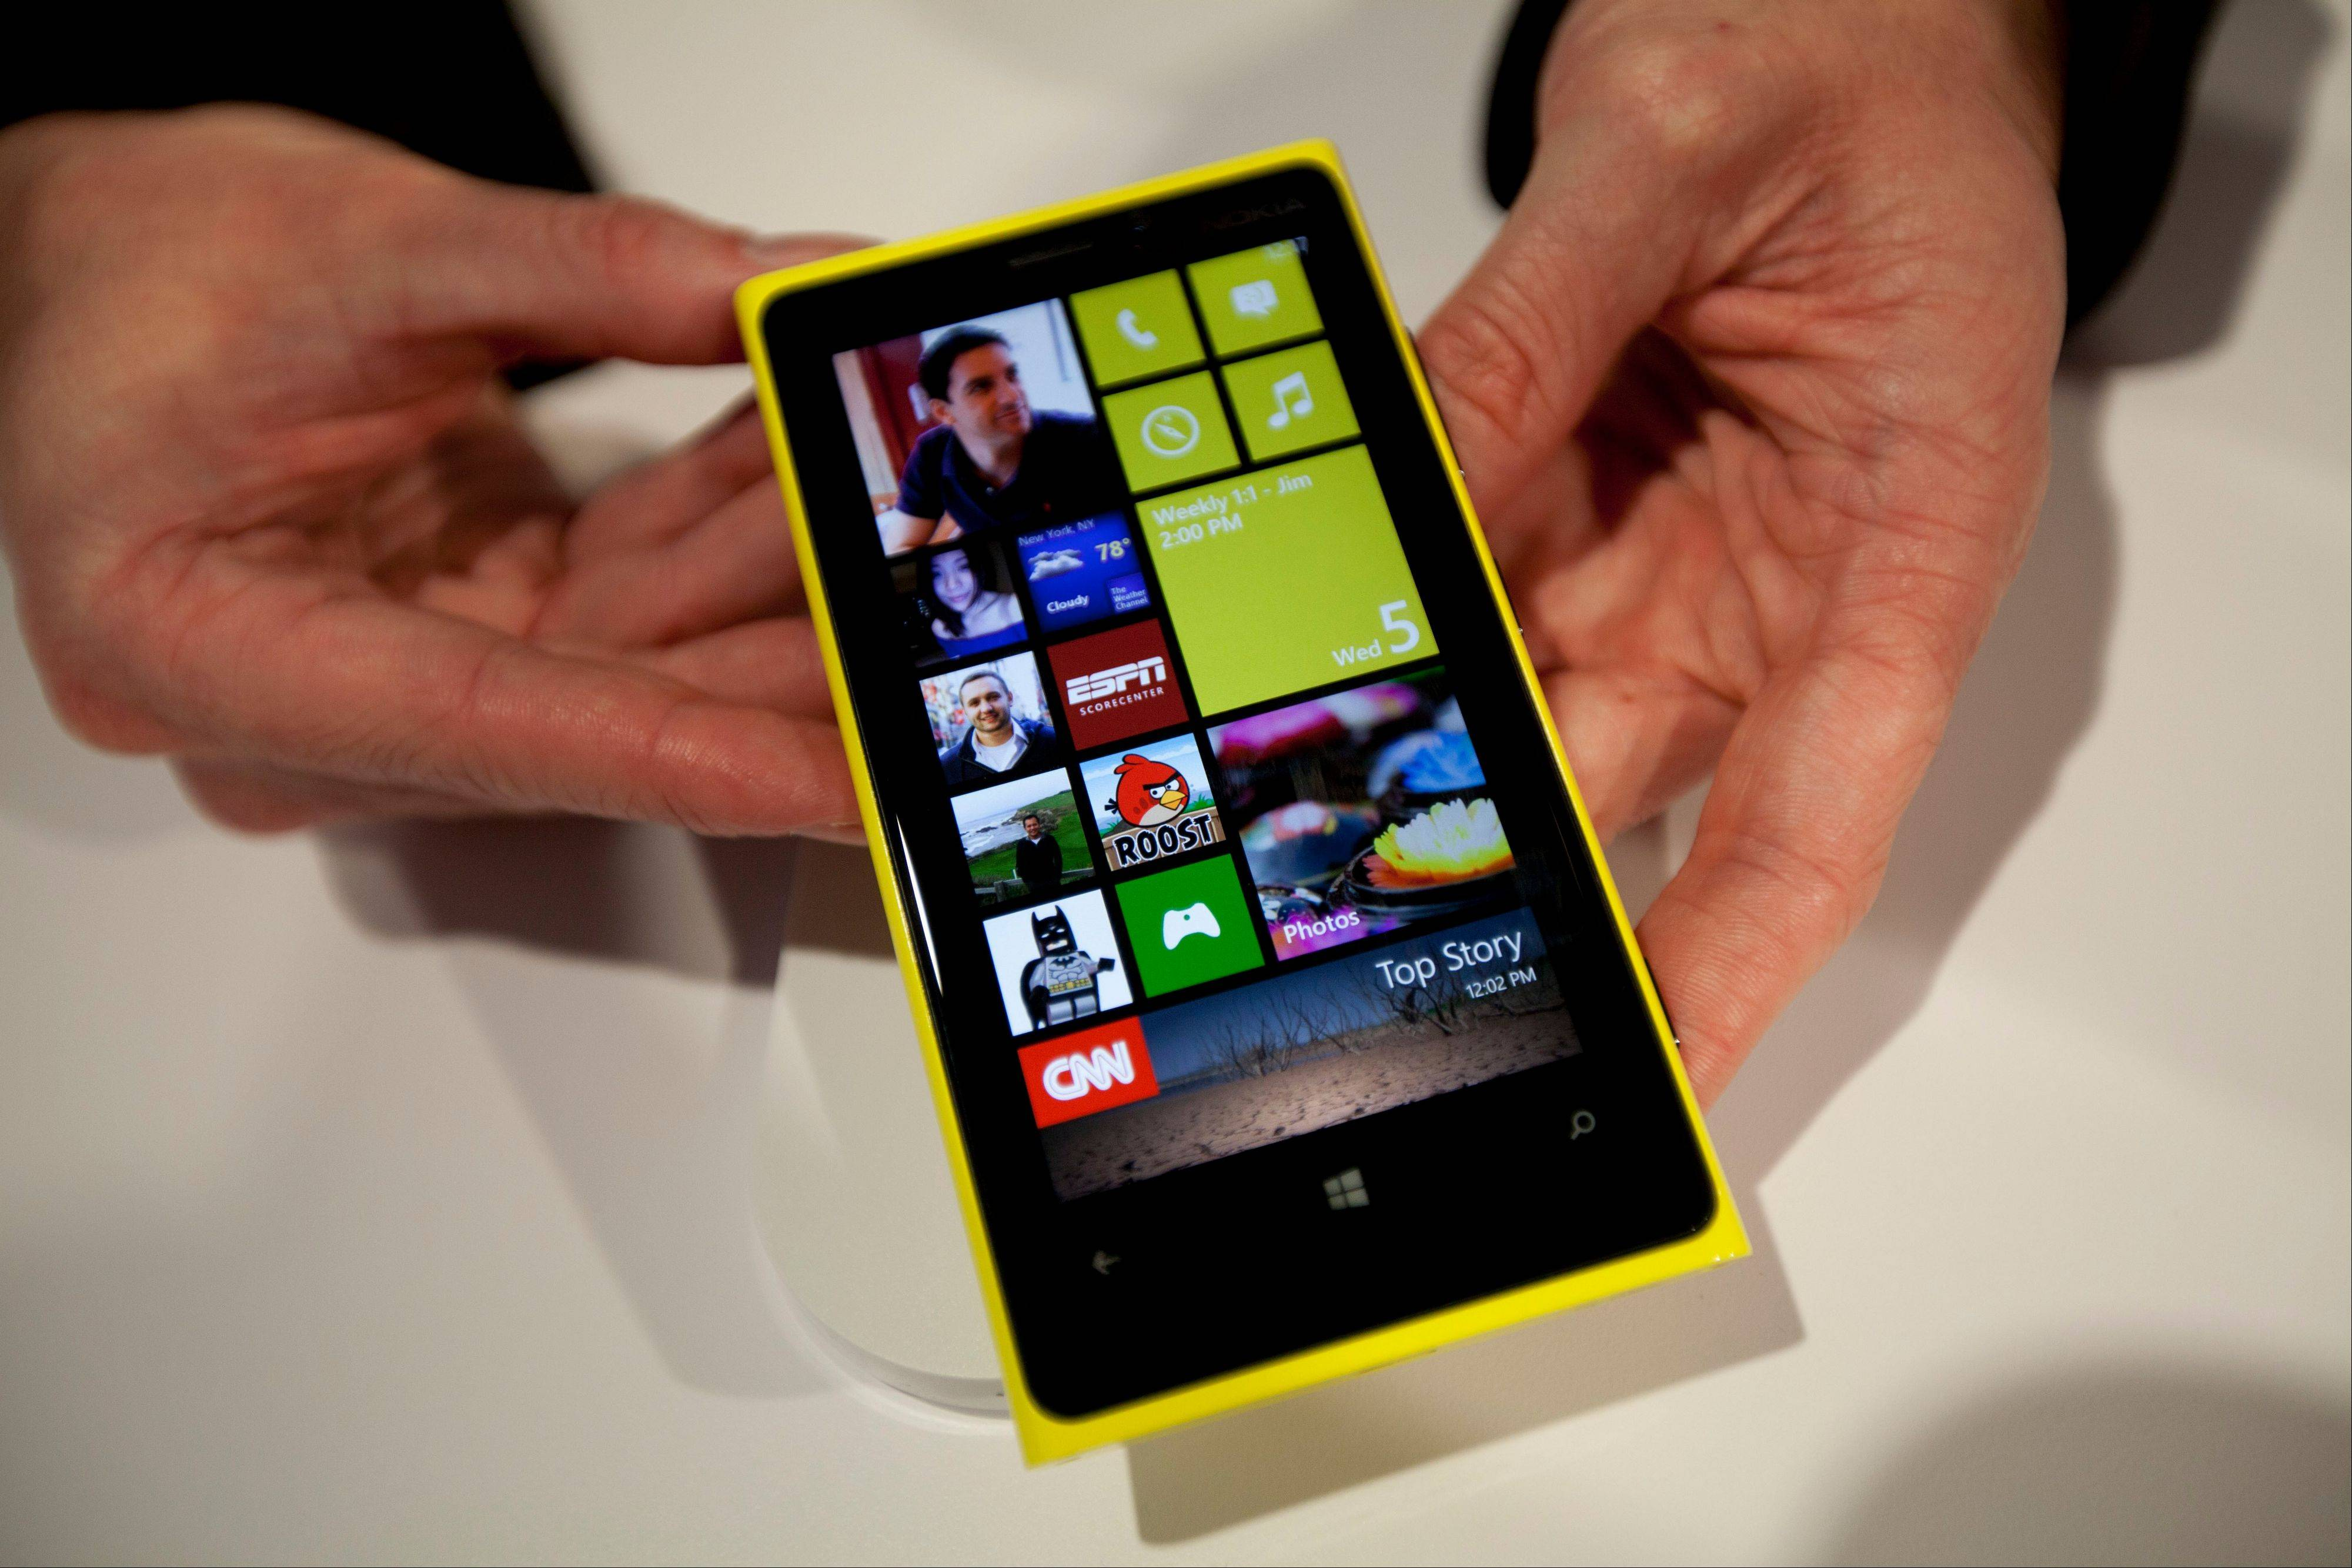 Nokia said last week it was sorry for not making clear that a promotional video and still photos within an advertisement weren't captured with its new Lumia 920 smartphone.